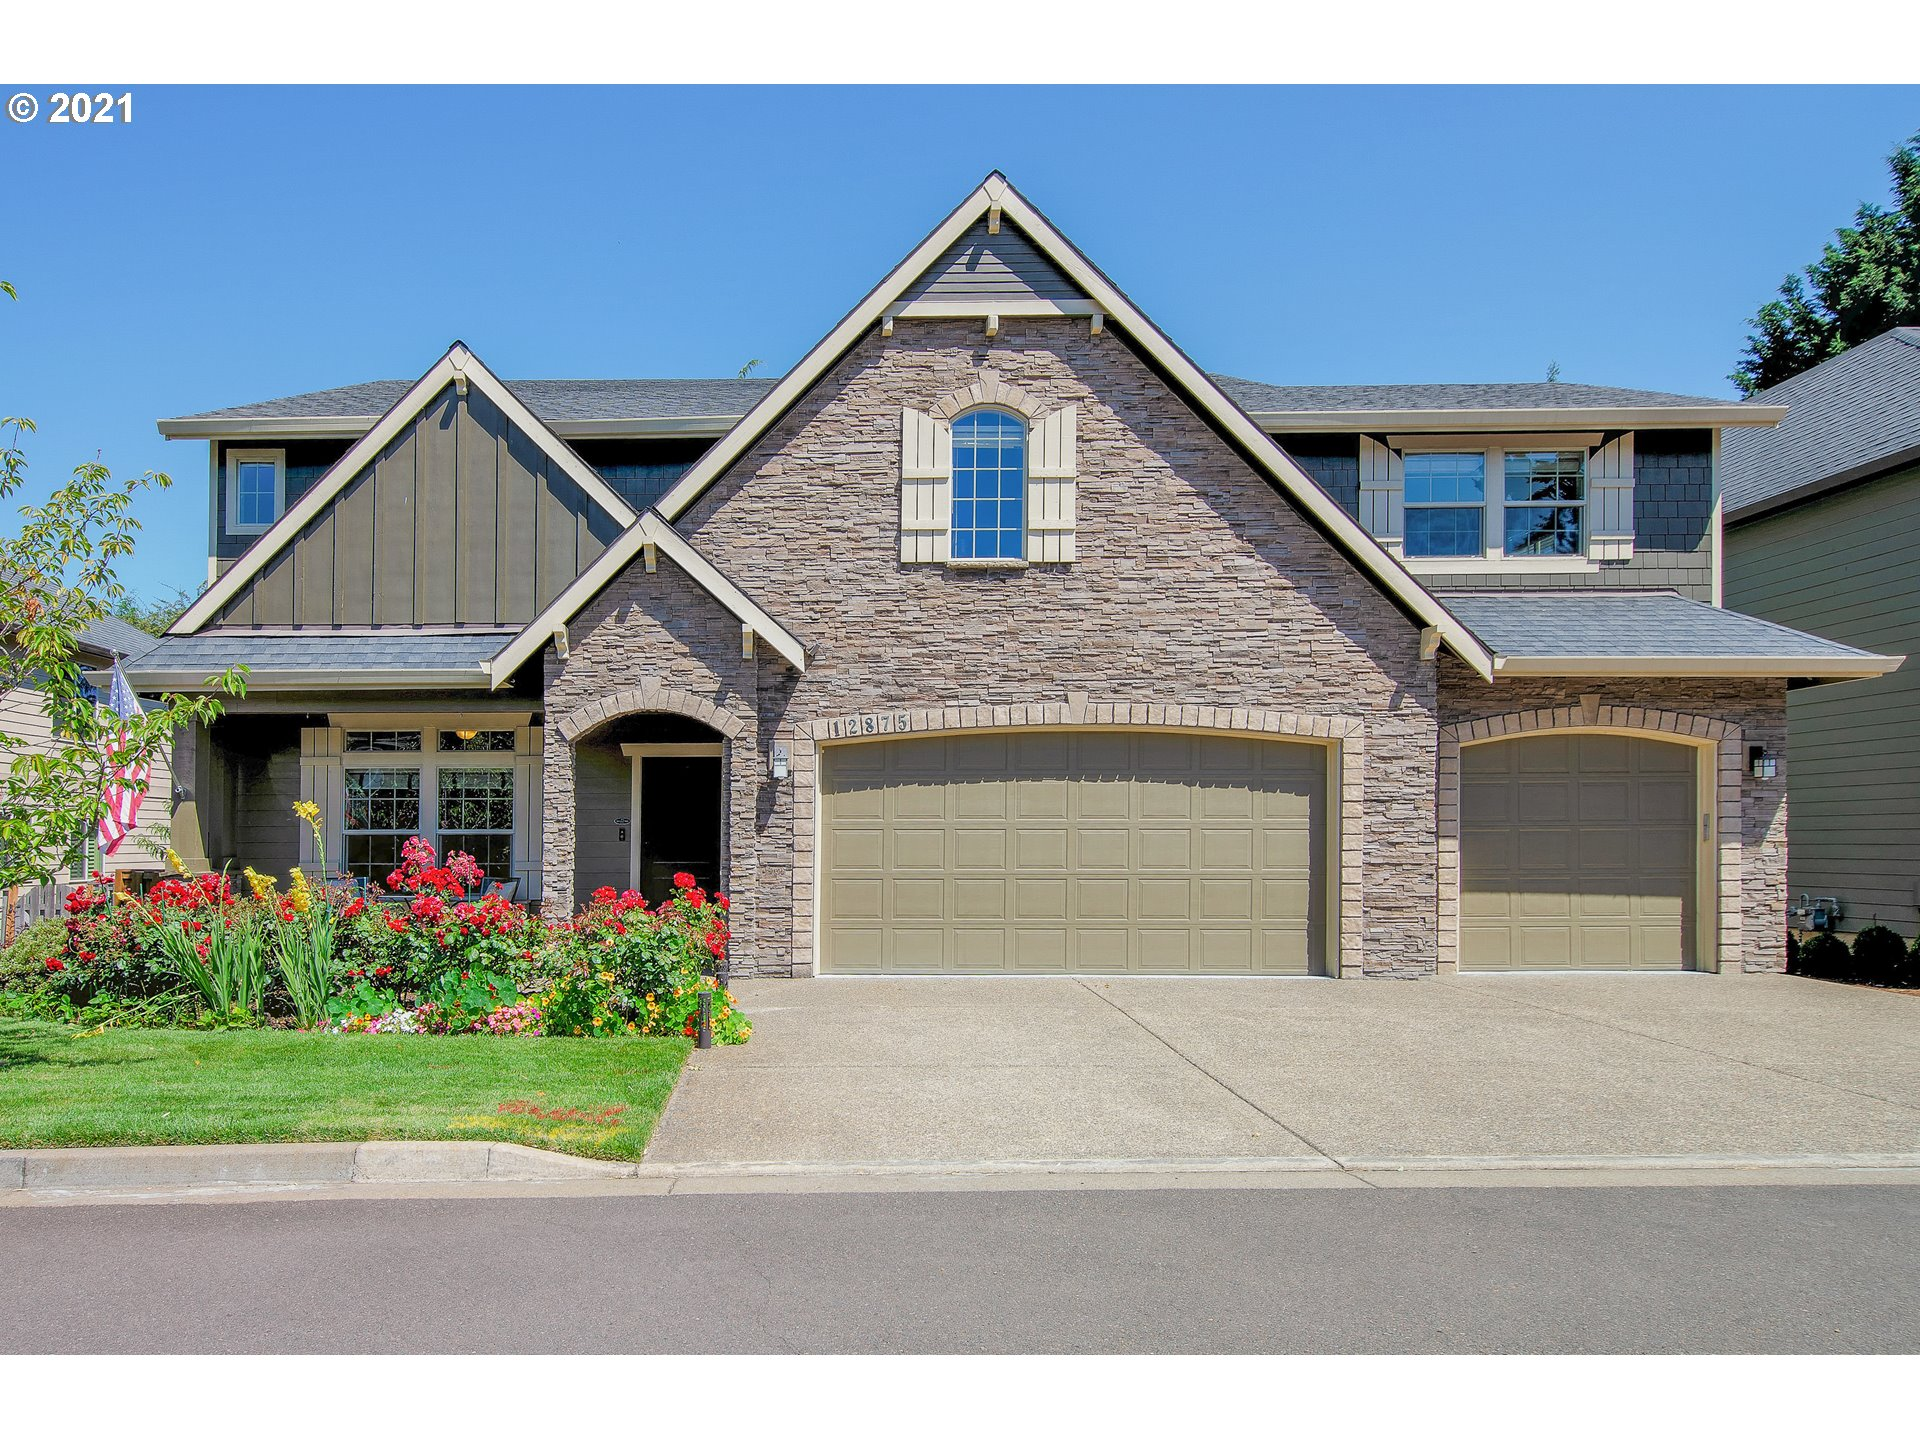 Stunning Executive Smart Home. Impressive home boasts soaring high ceilings, large rooms w/ huge windows. Relax/workout in the oversized bonus/game room w/ wet bar. Entertain in the gourmet kitchen/great room. Move to the amazing backyard equipped w/ covered outdoor living area that opens for sunshine. Luxurious master en suite. Impeccably updated with stylish, high-end materials. 3 car garage w/ lots of storage. Must see to appreciate! Quiet neighborhood and easy access to food/shop/fwys.